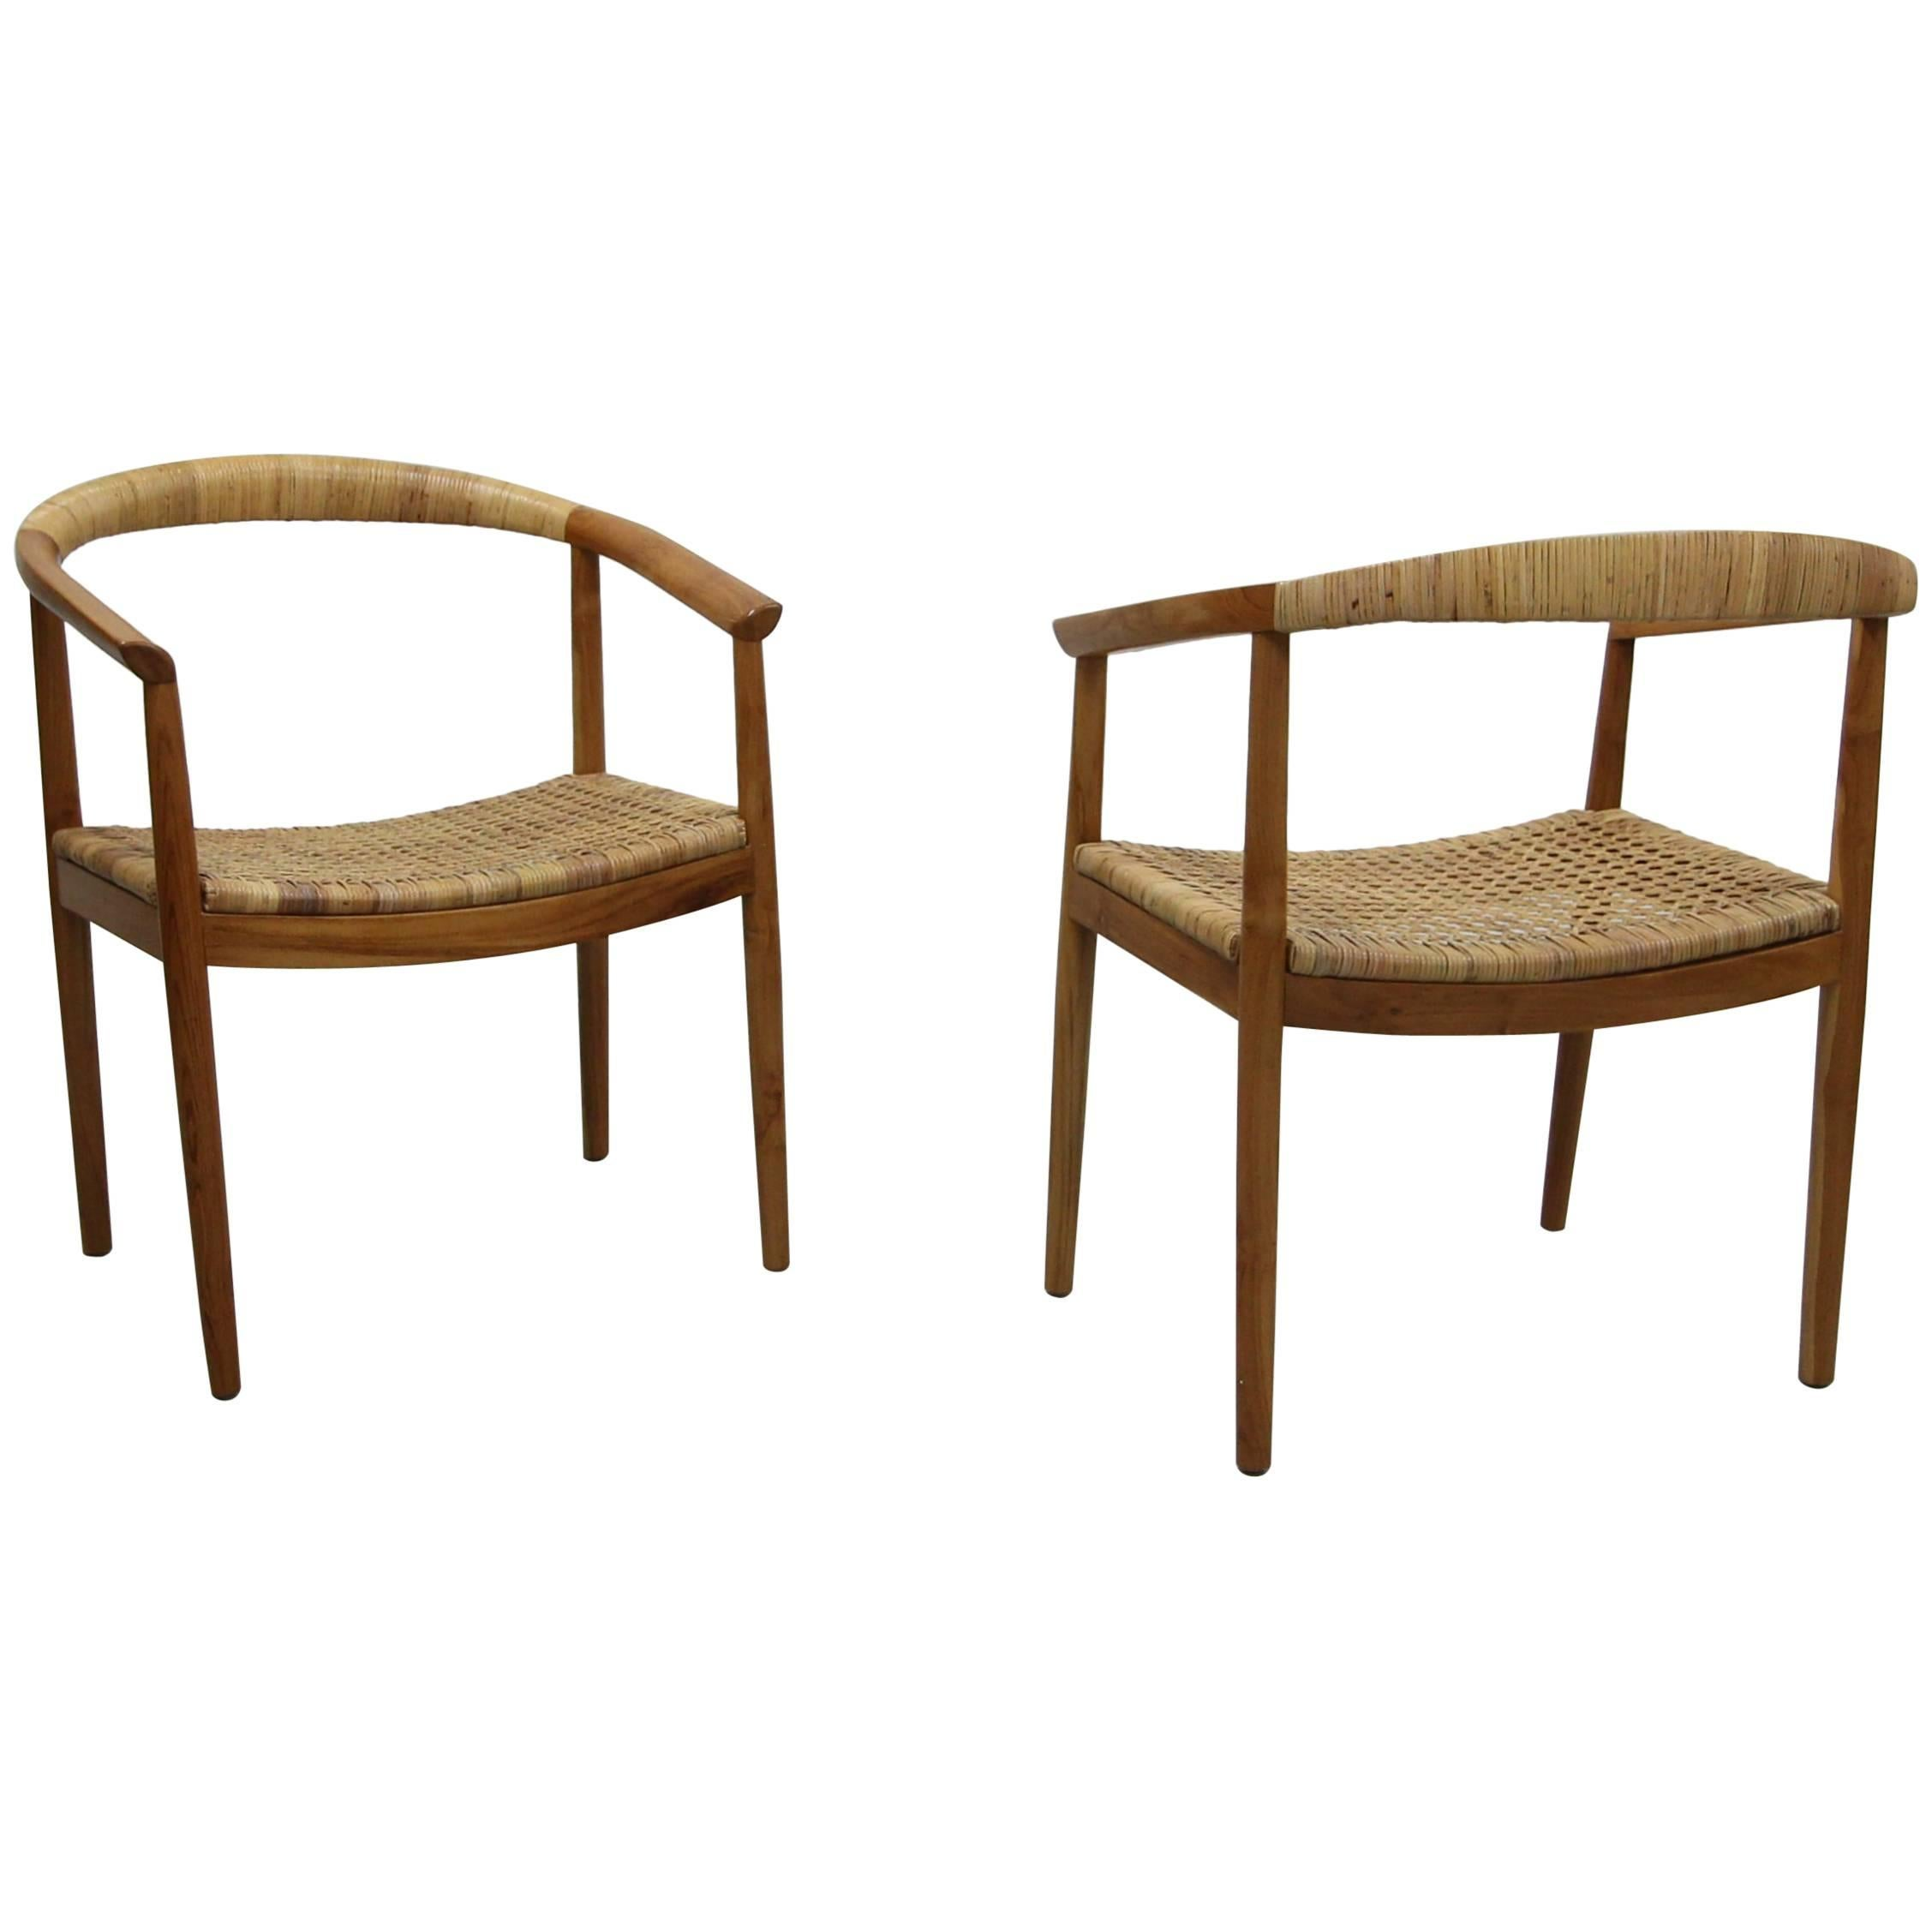 Vintage Pair Of Oversized Danish Style Teak And Cane Round Back Side Chairs  For Sale